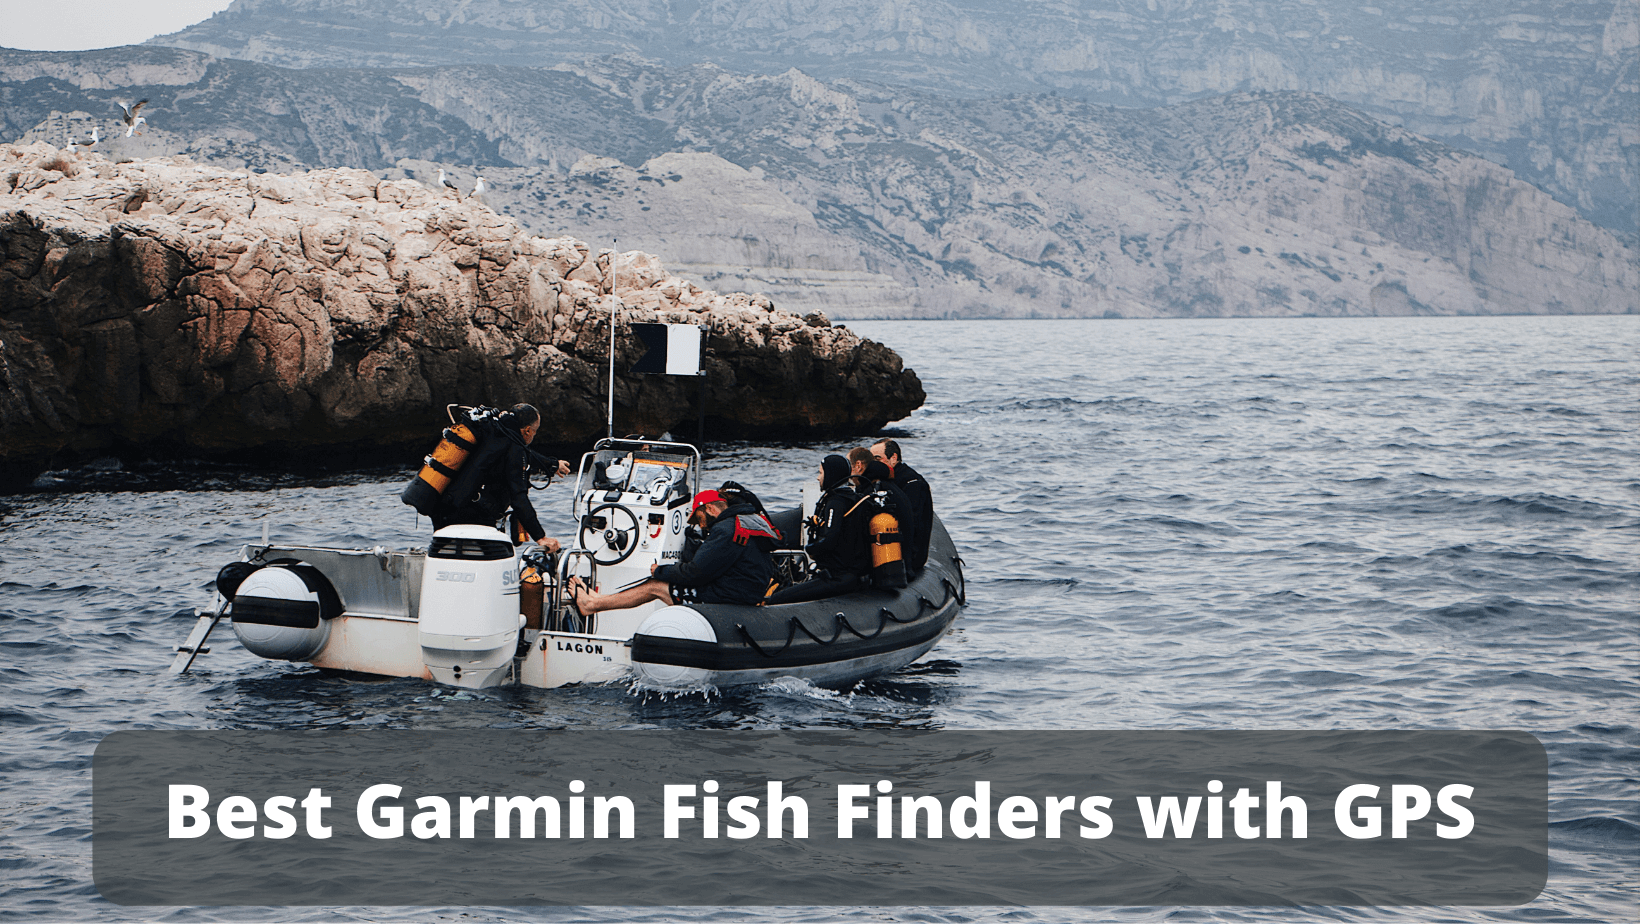 Best Garmin Fish Finders with GPS